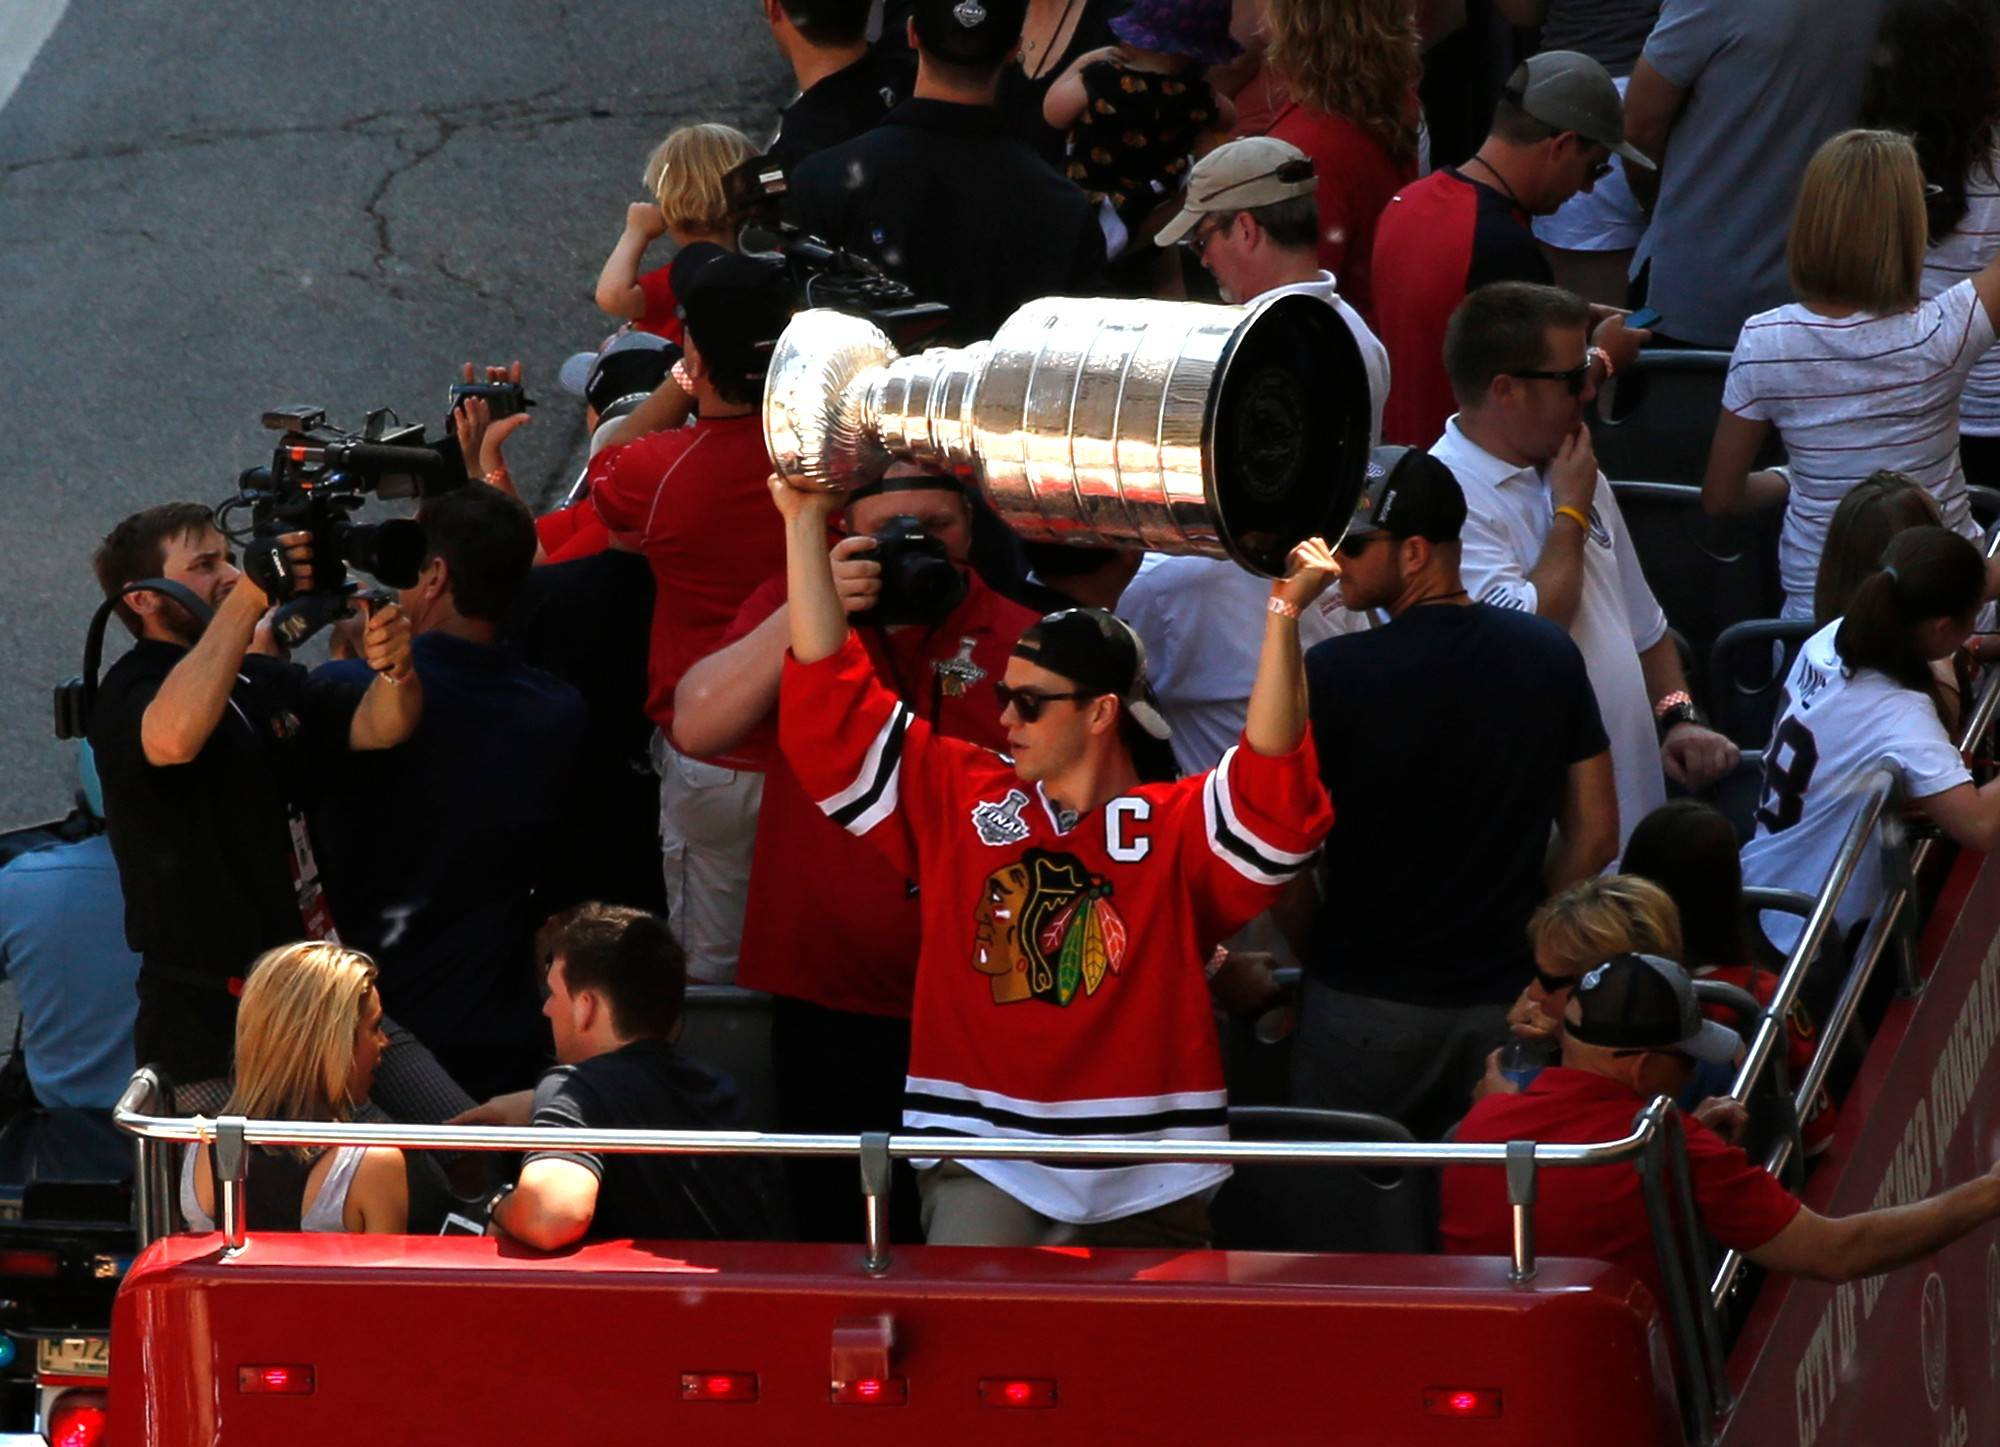 Chicago Blackhawks' Jonathan Toews holds up the 2013 Stanley Cup during a victory parade in Chicago. It was the team's second championship in four years.